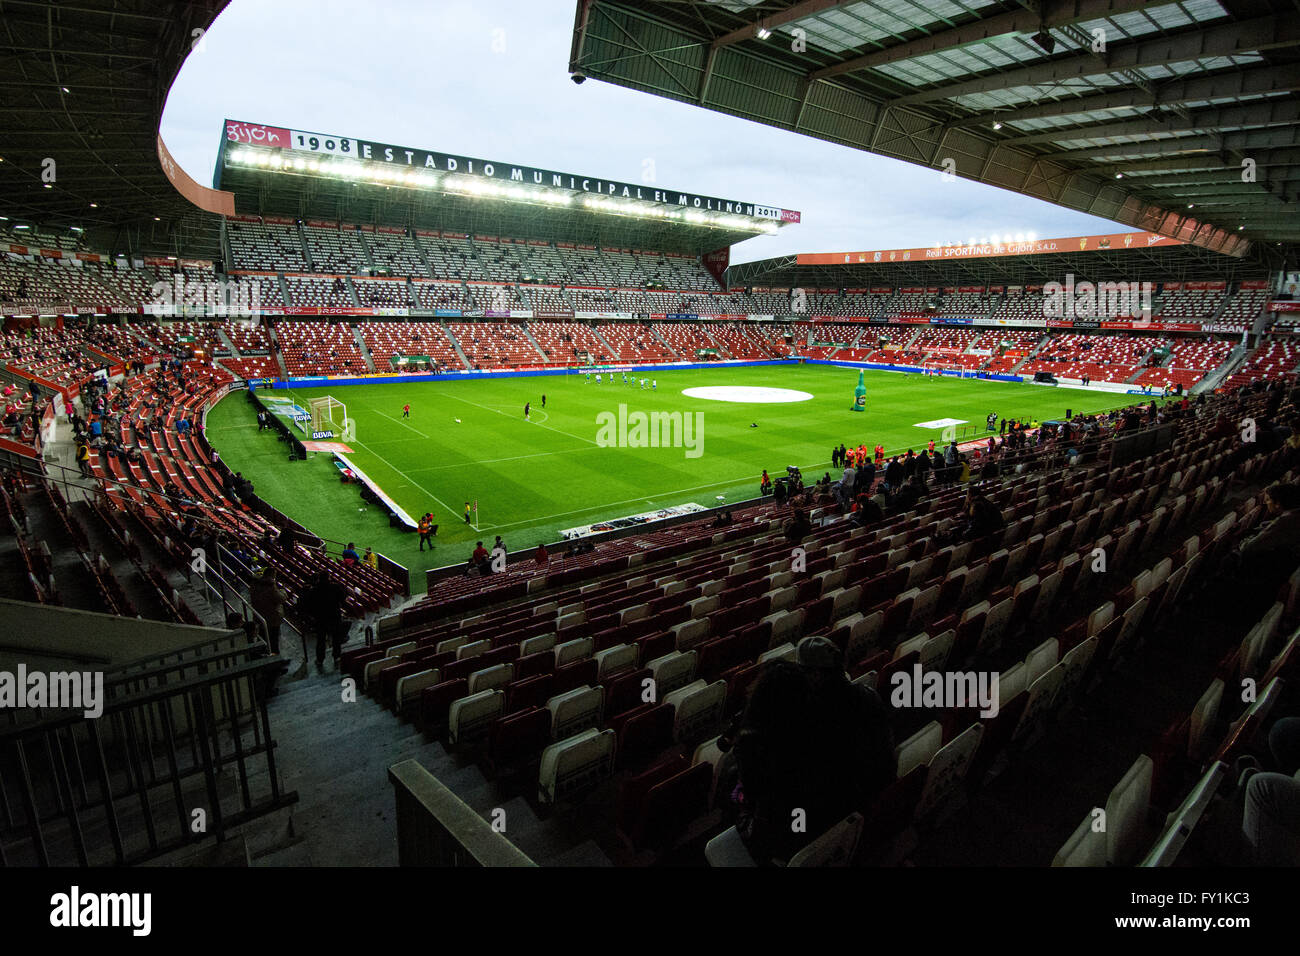 Gijon, Spain. 20th April, 2016. Stadium Molinon after the start of the football match of Spanish 'La Liga' between - Stock Image